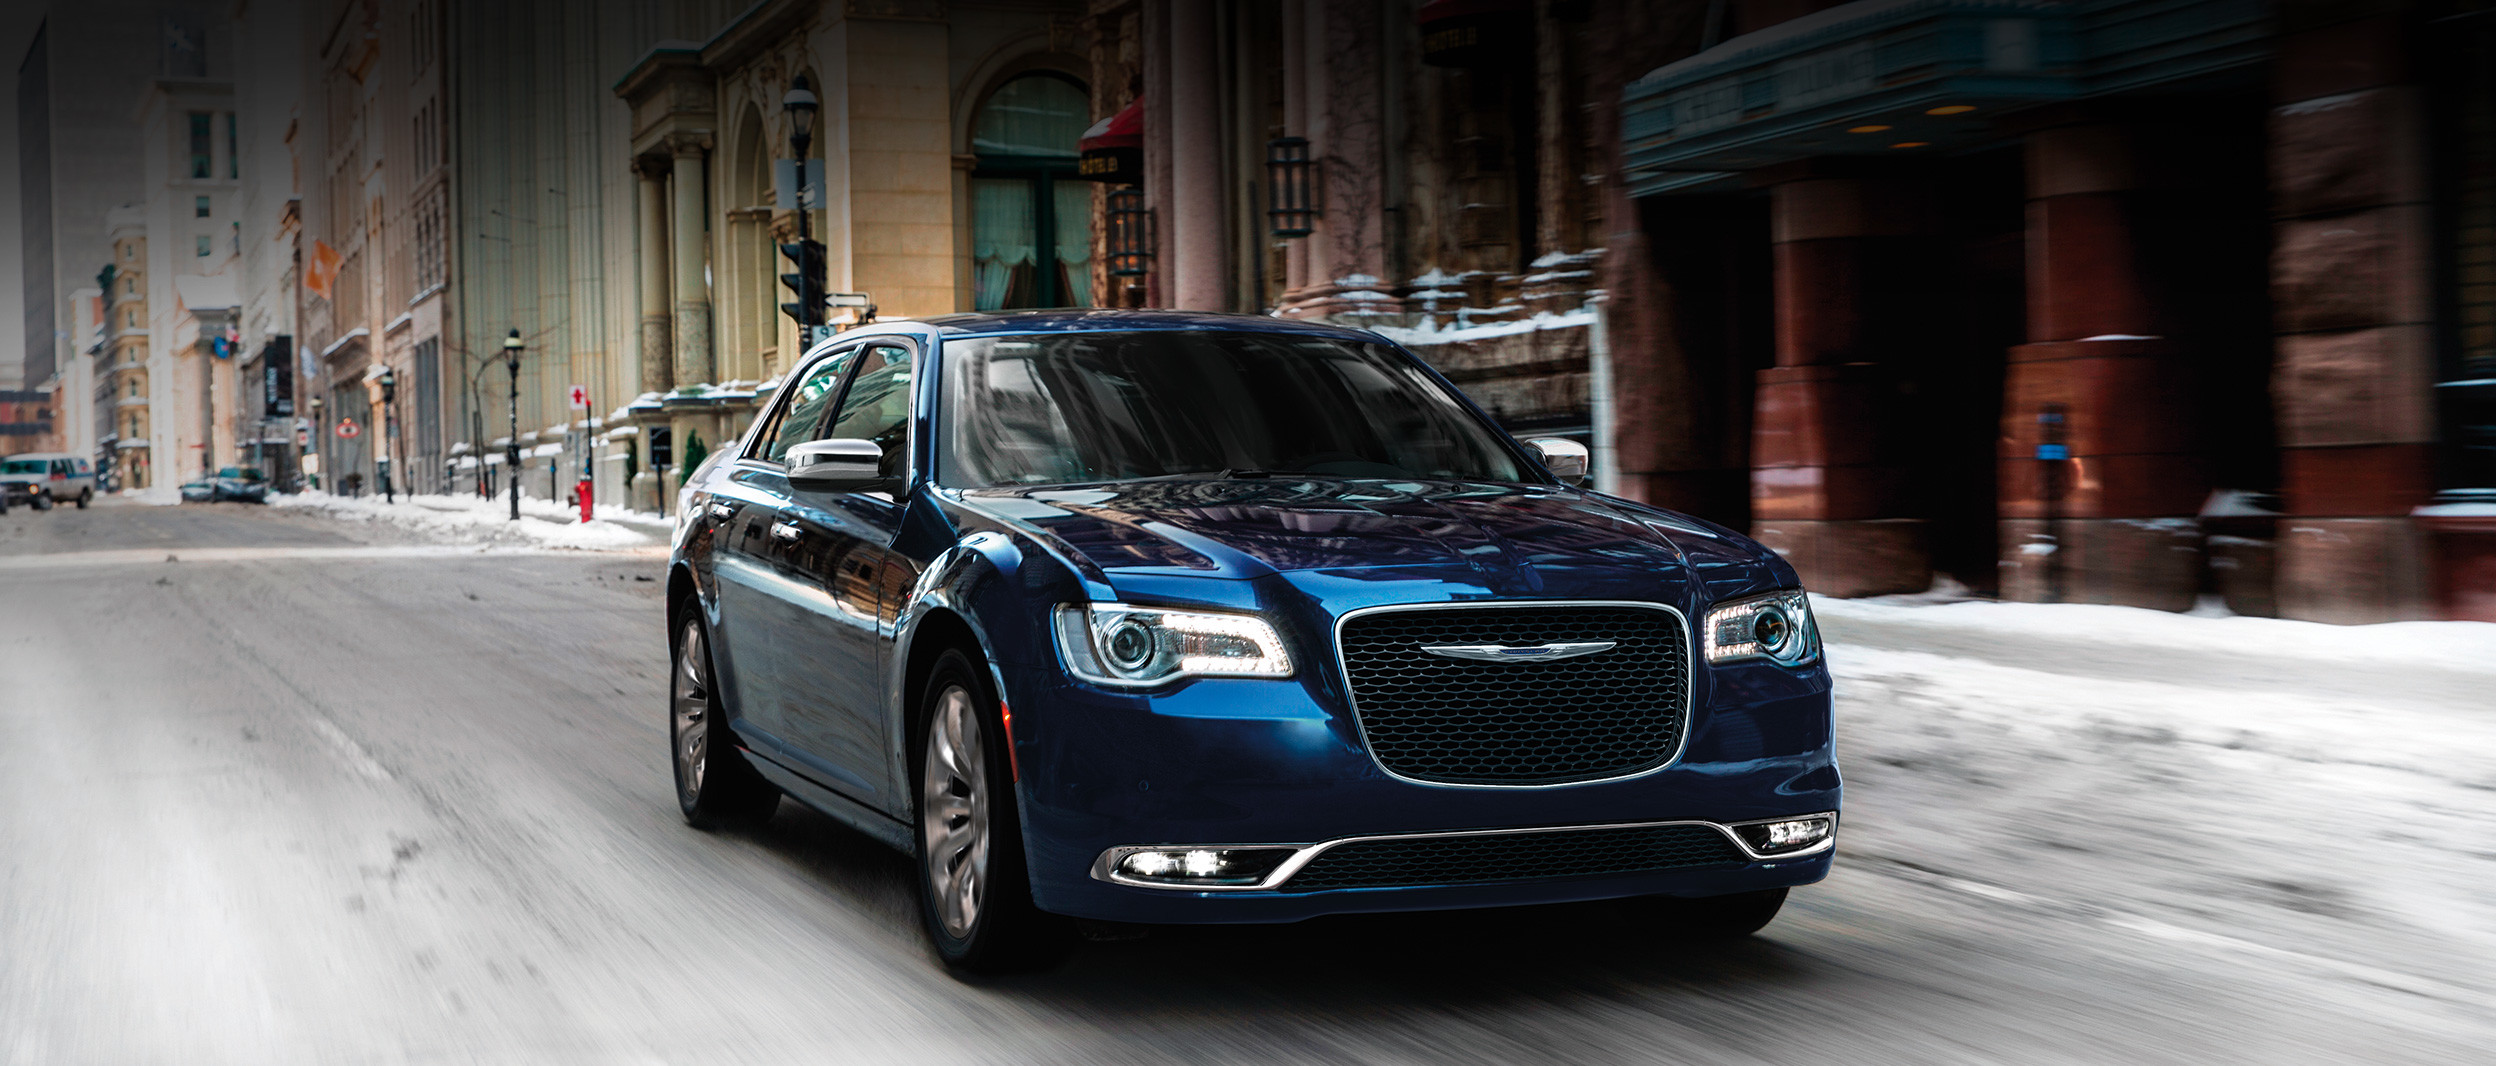 The blue 2020 Chrysler 300 being driven on a road in urban area